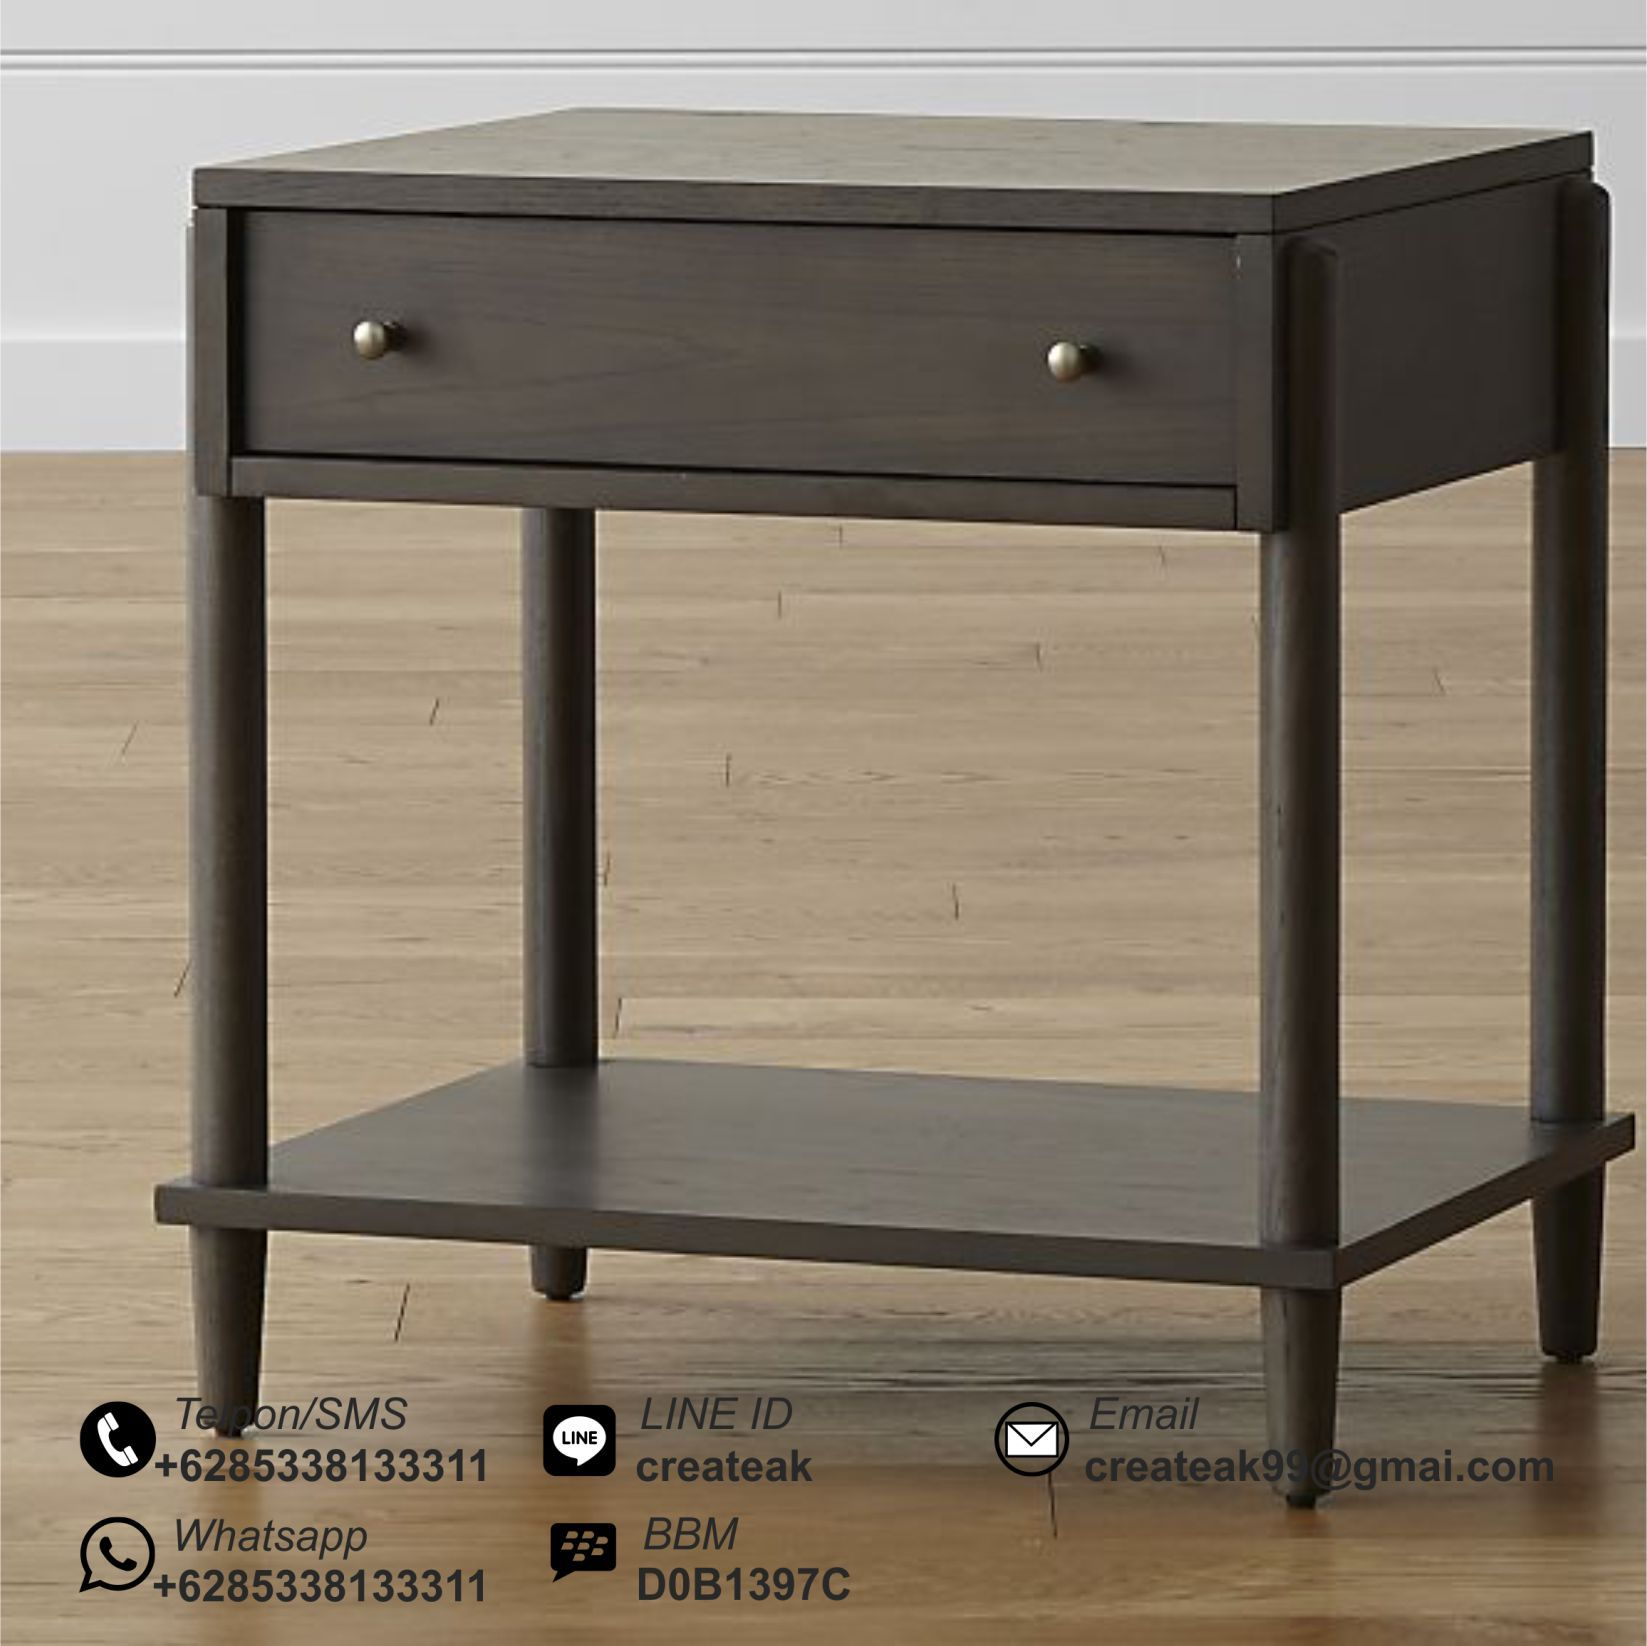 Barnes nightstand wood nightstand brown nightstands white nightstand bedside cabinet bedroom furniture